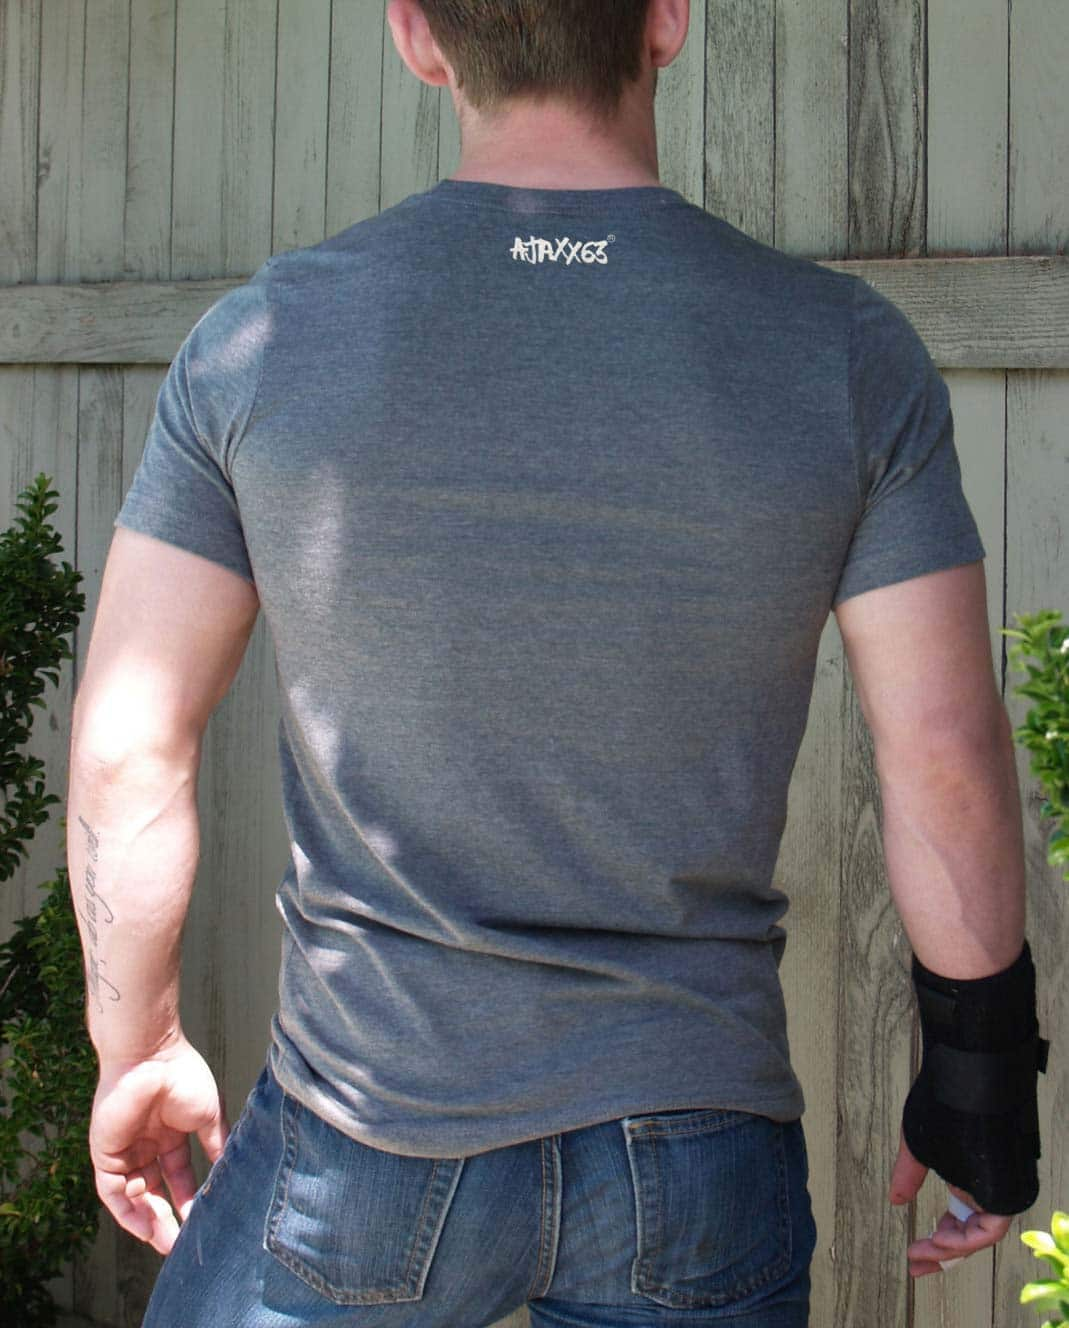 Male model wearing Ajaxx63 Greedy Hole Men's T-shirt